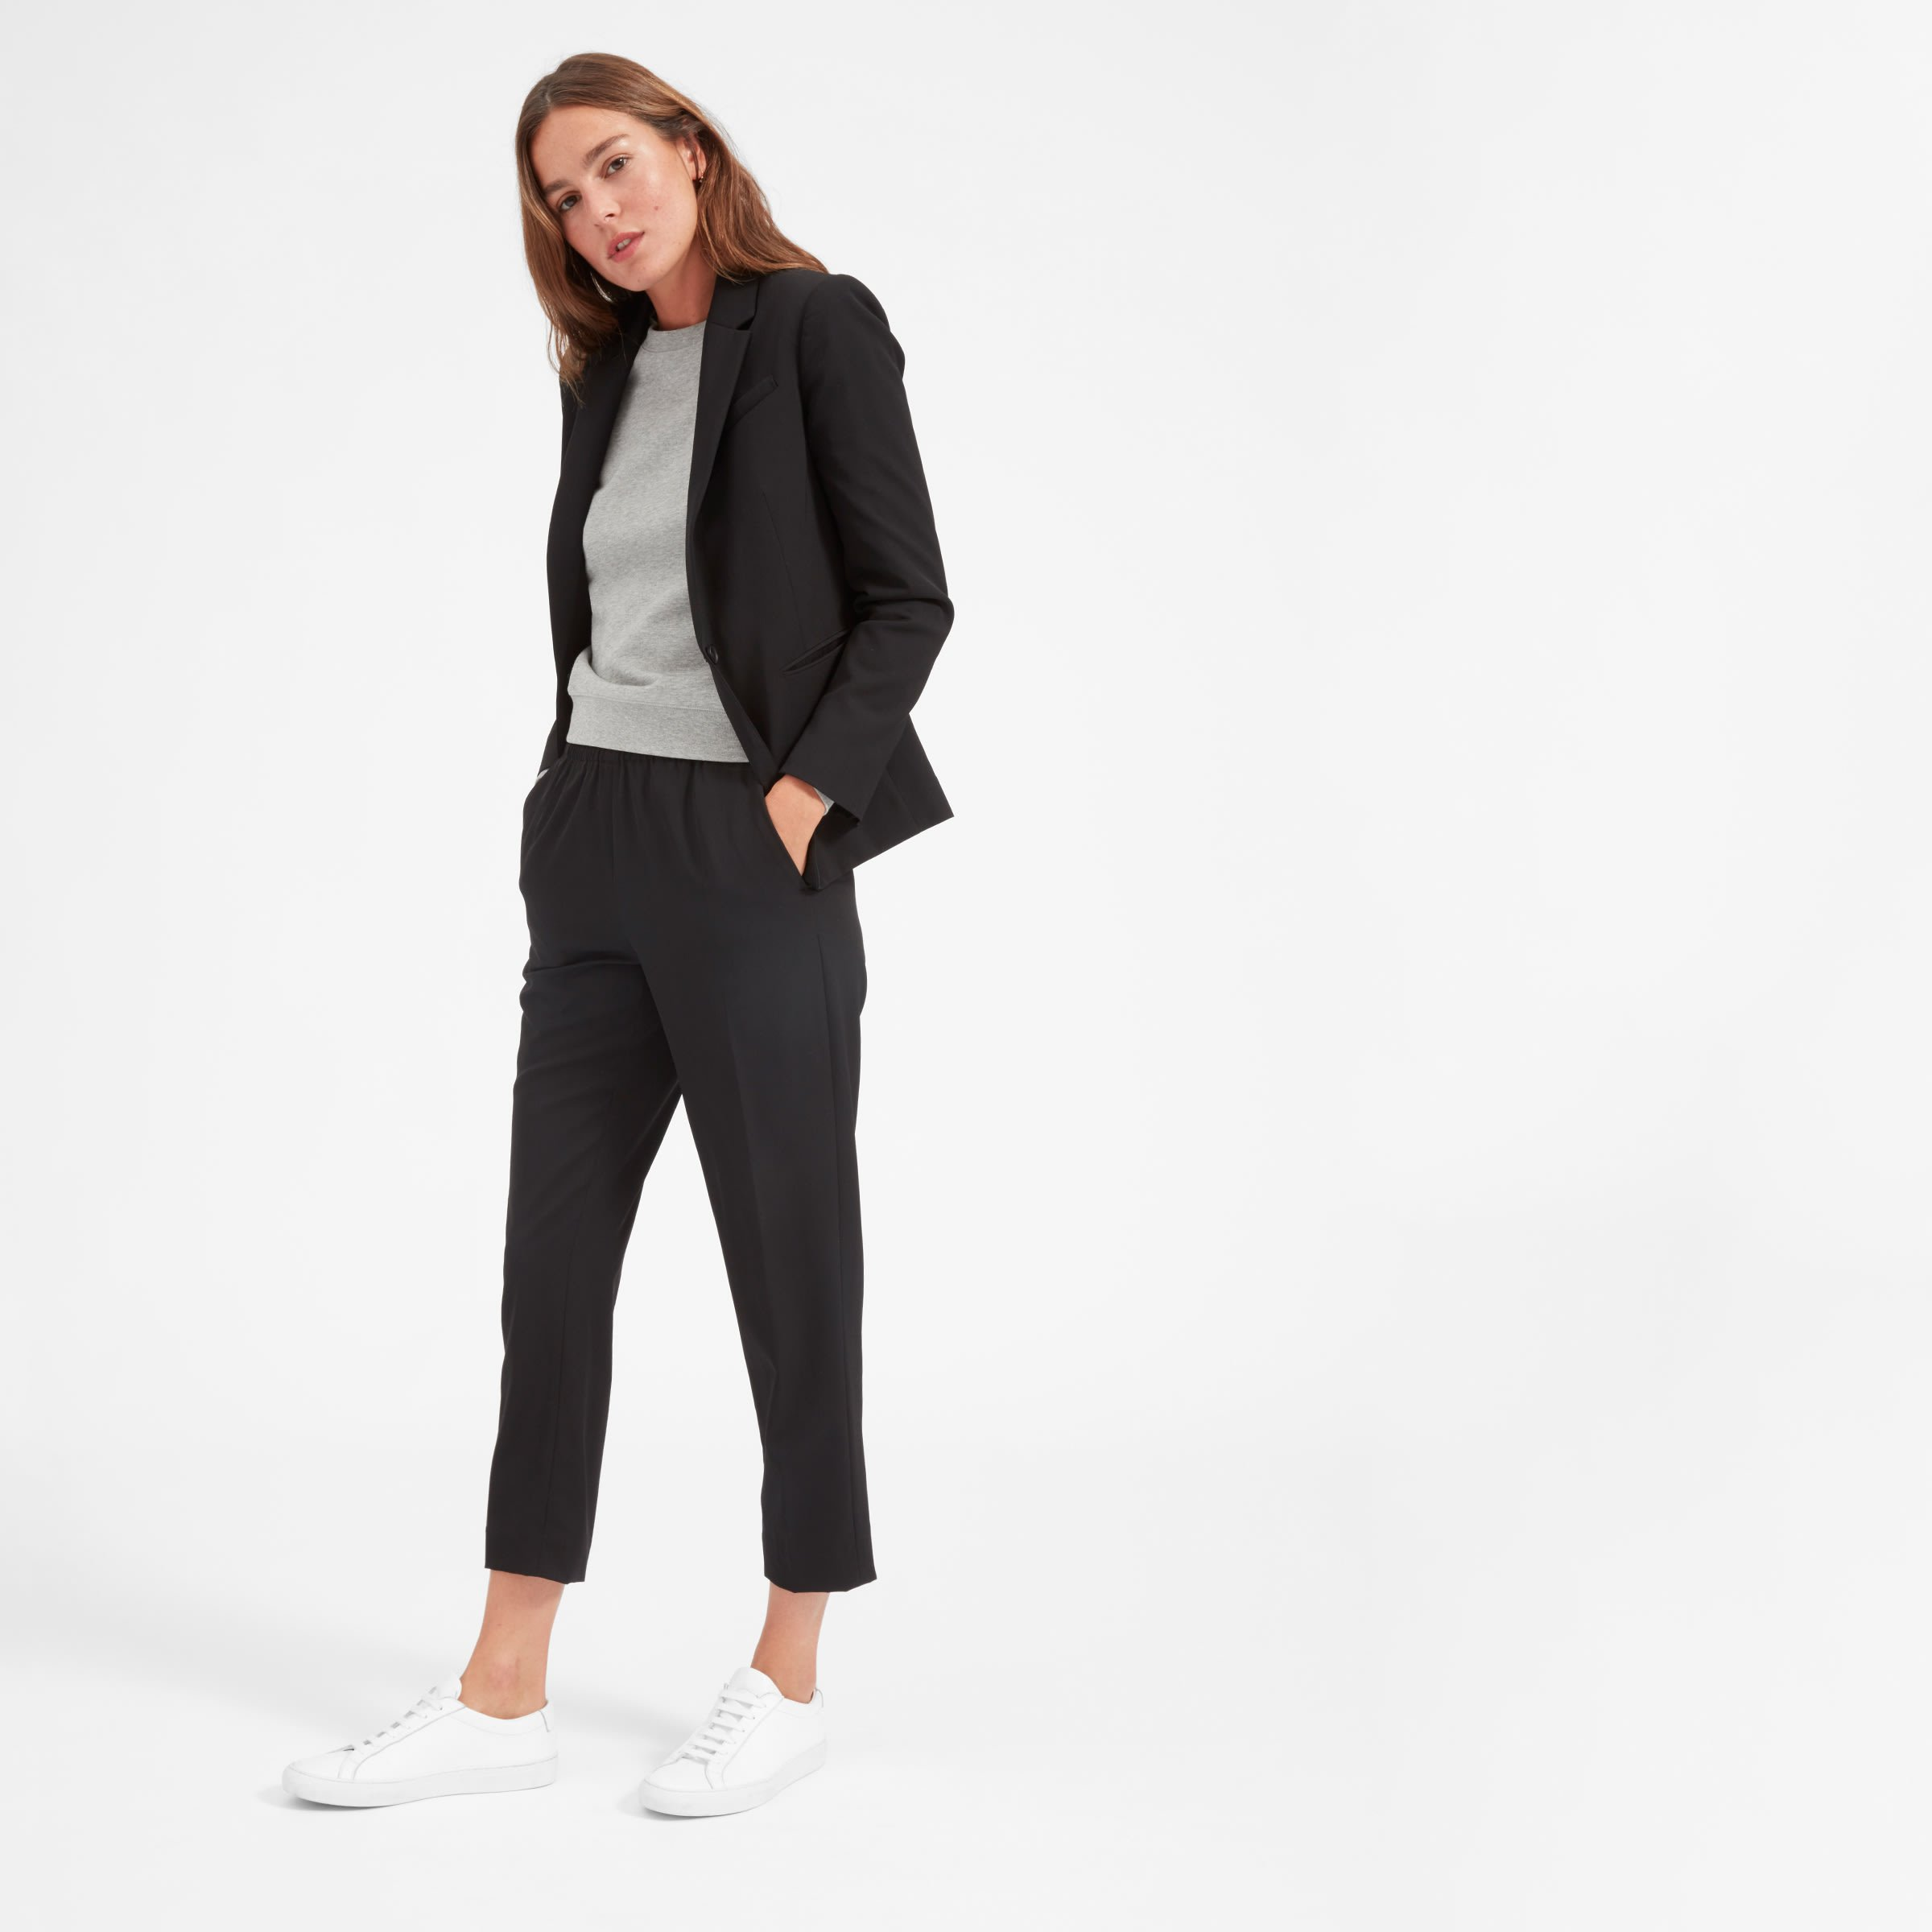 Everlane travel-friendly suits creaseless